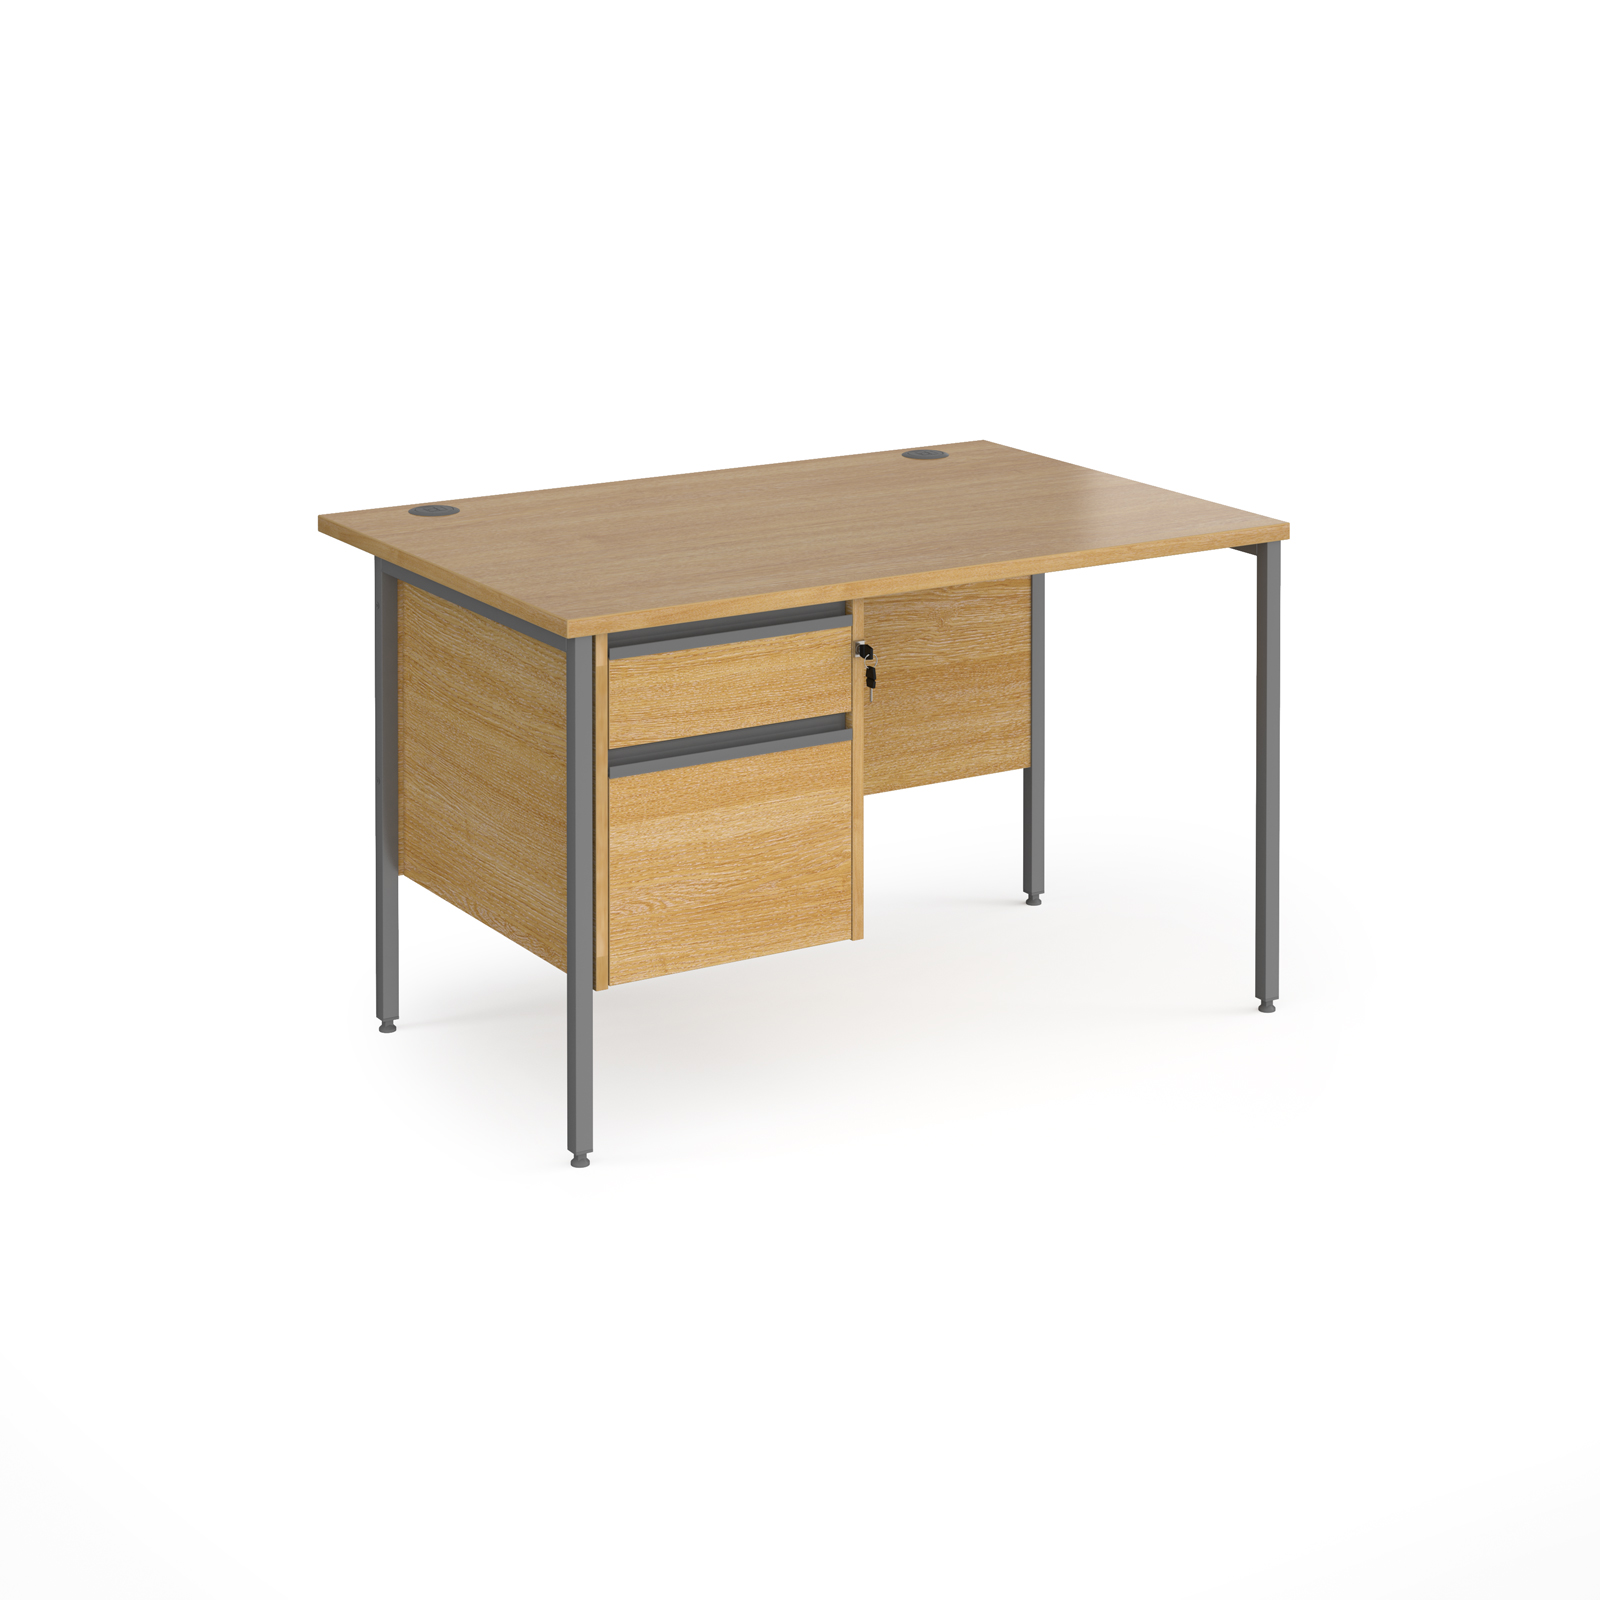 Contract 25 straight desk with 2 drawer pedestal and graphite H-Frame leg 1200mm x 800mm - oak top